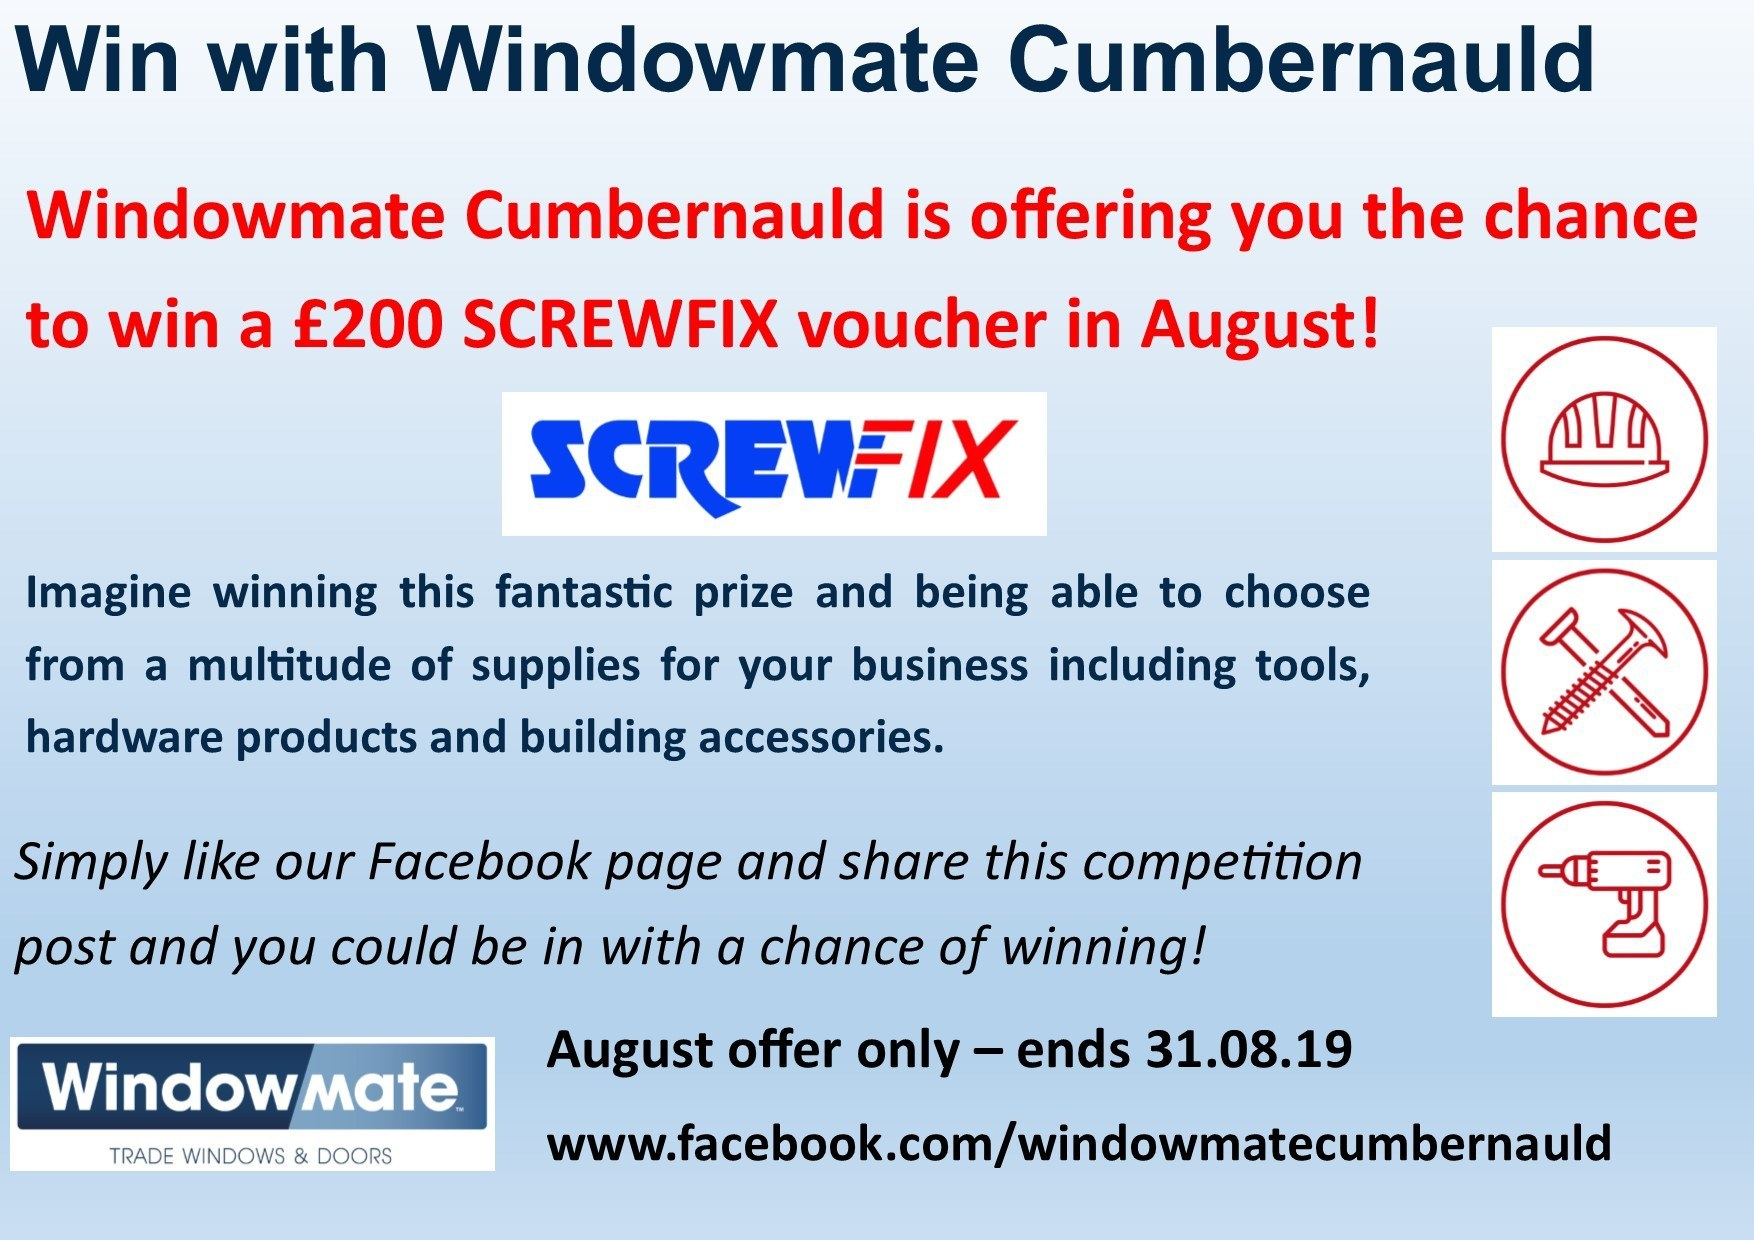 Competition Time for Windowmate Cumbernauld